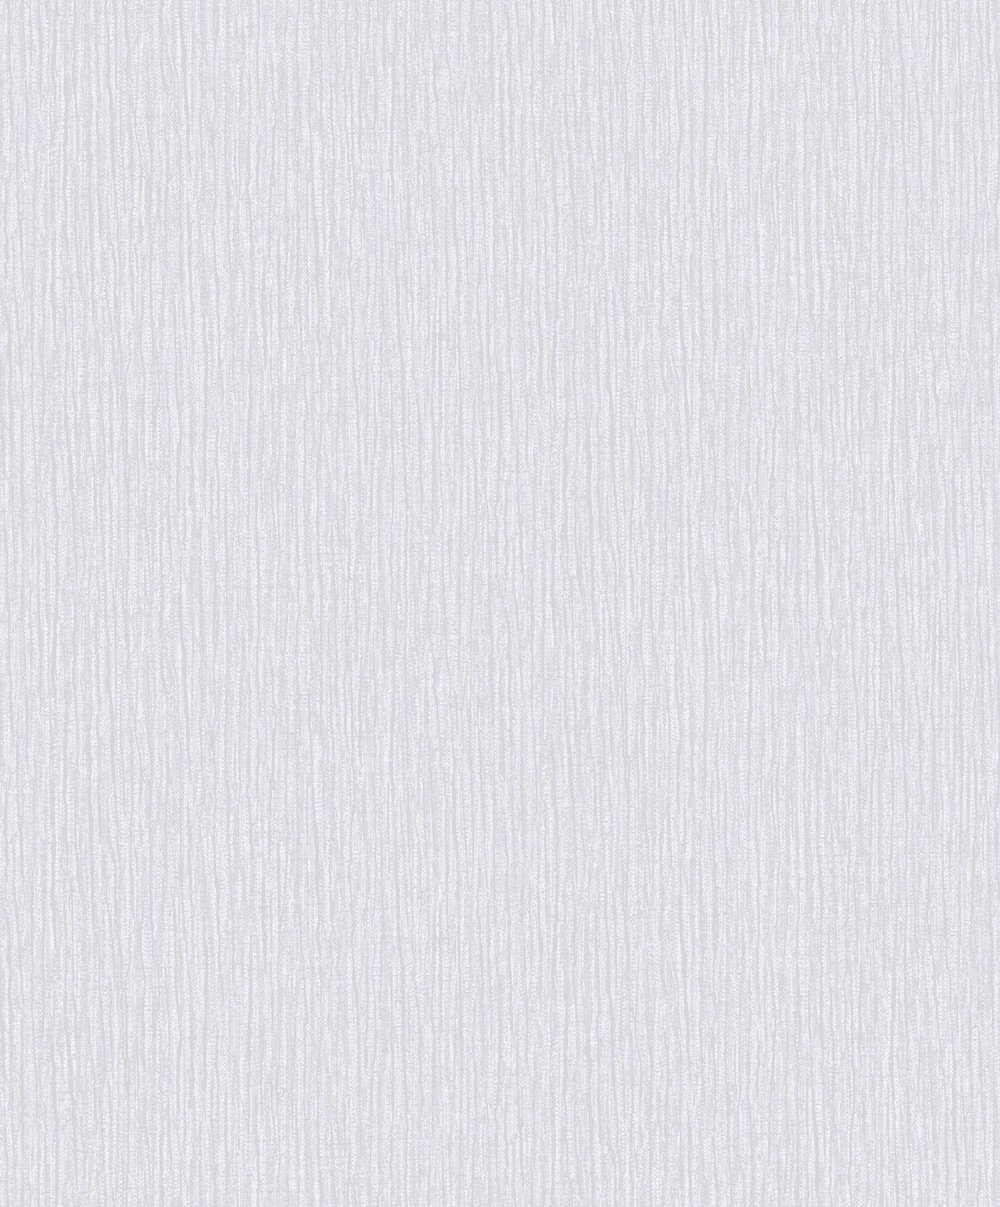 arthouse opera samba plain silver wallpaper.